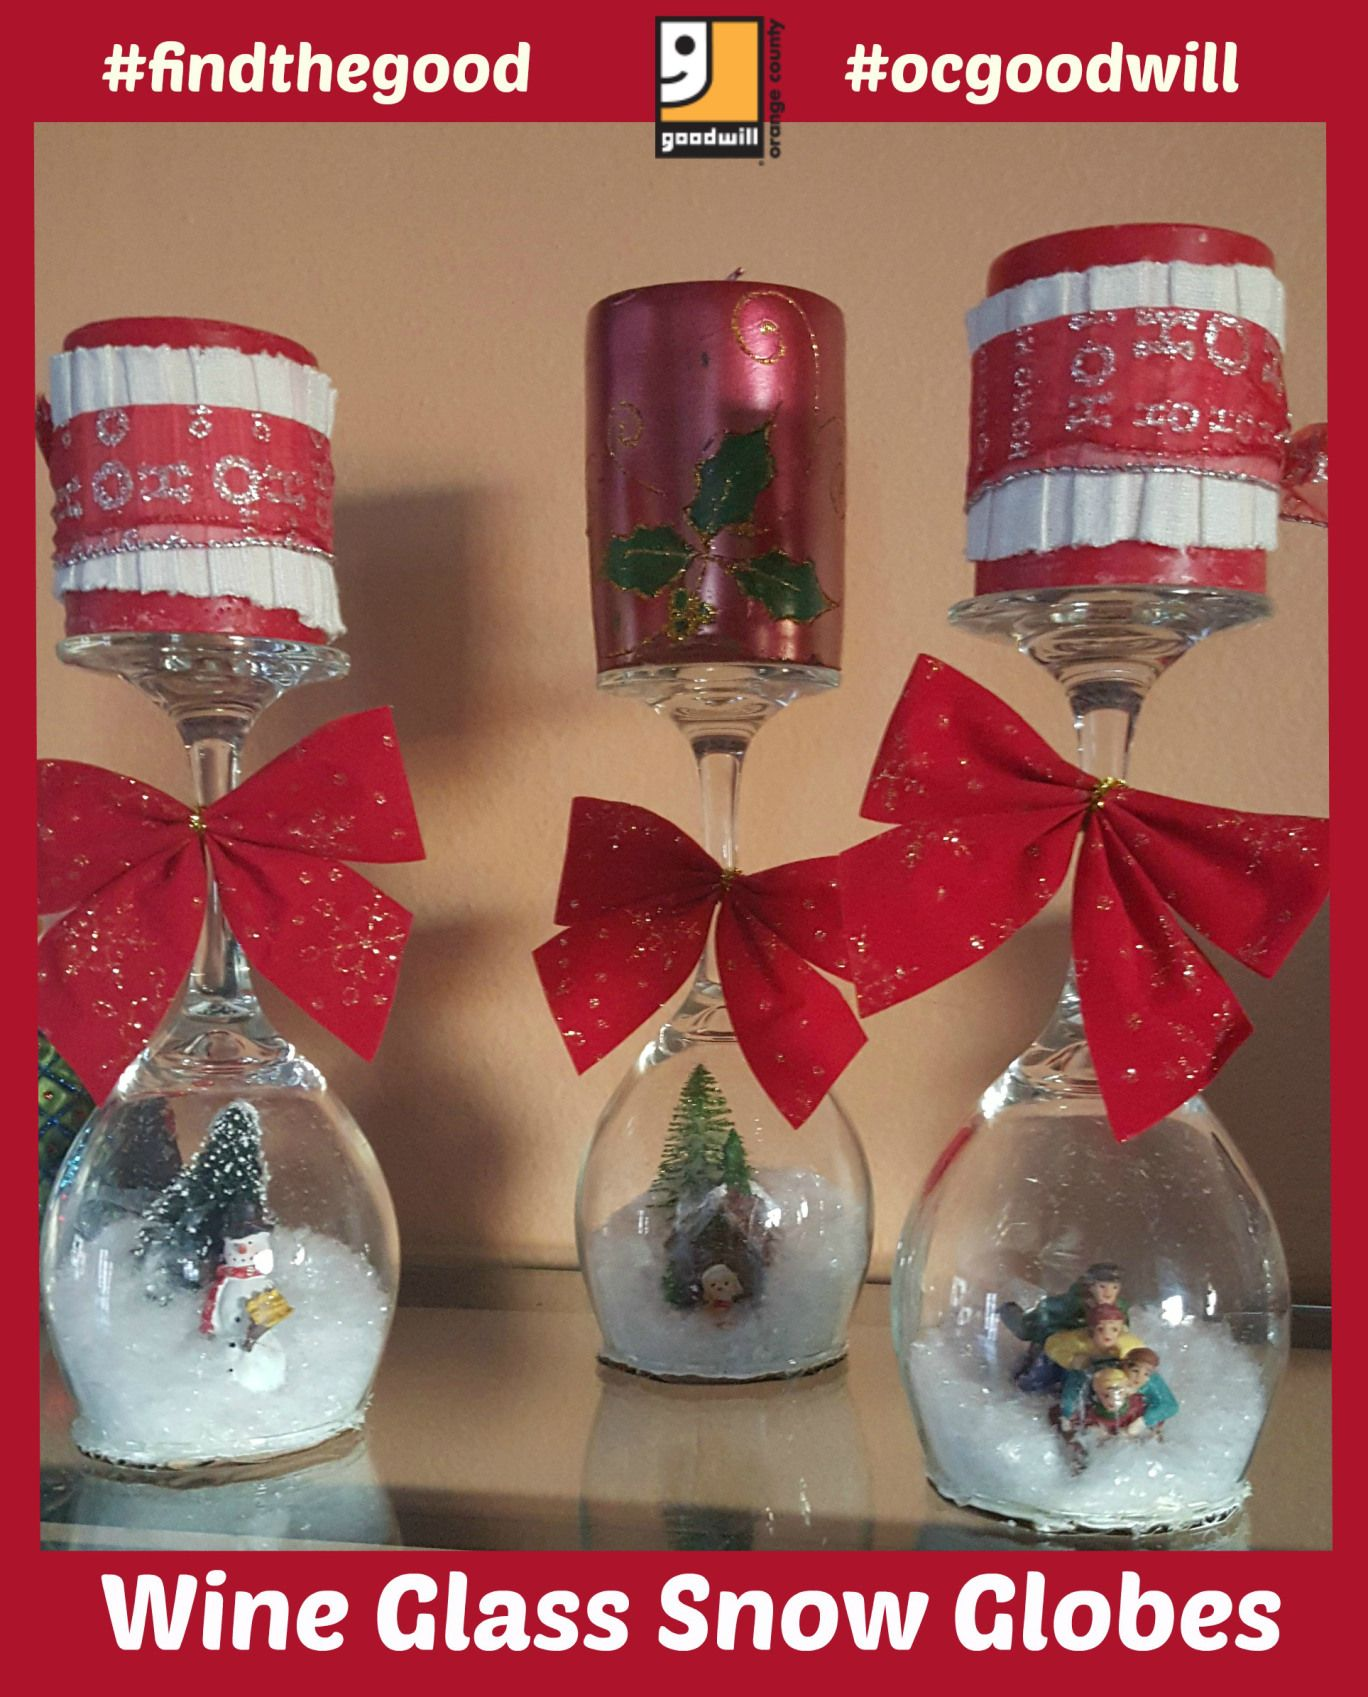 Diy Snow Globes Inside Wine Glasses How Clever Snow Globes Wine Glass Snow Globe Holiday Snow Globe